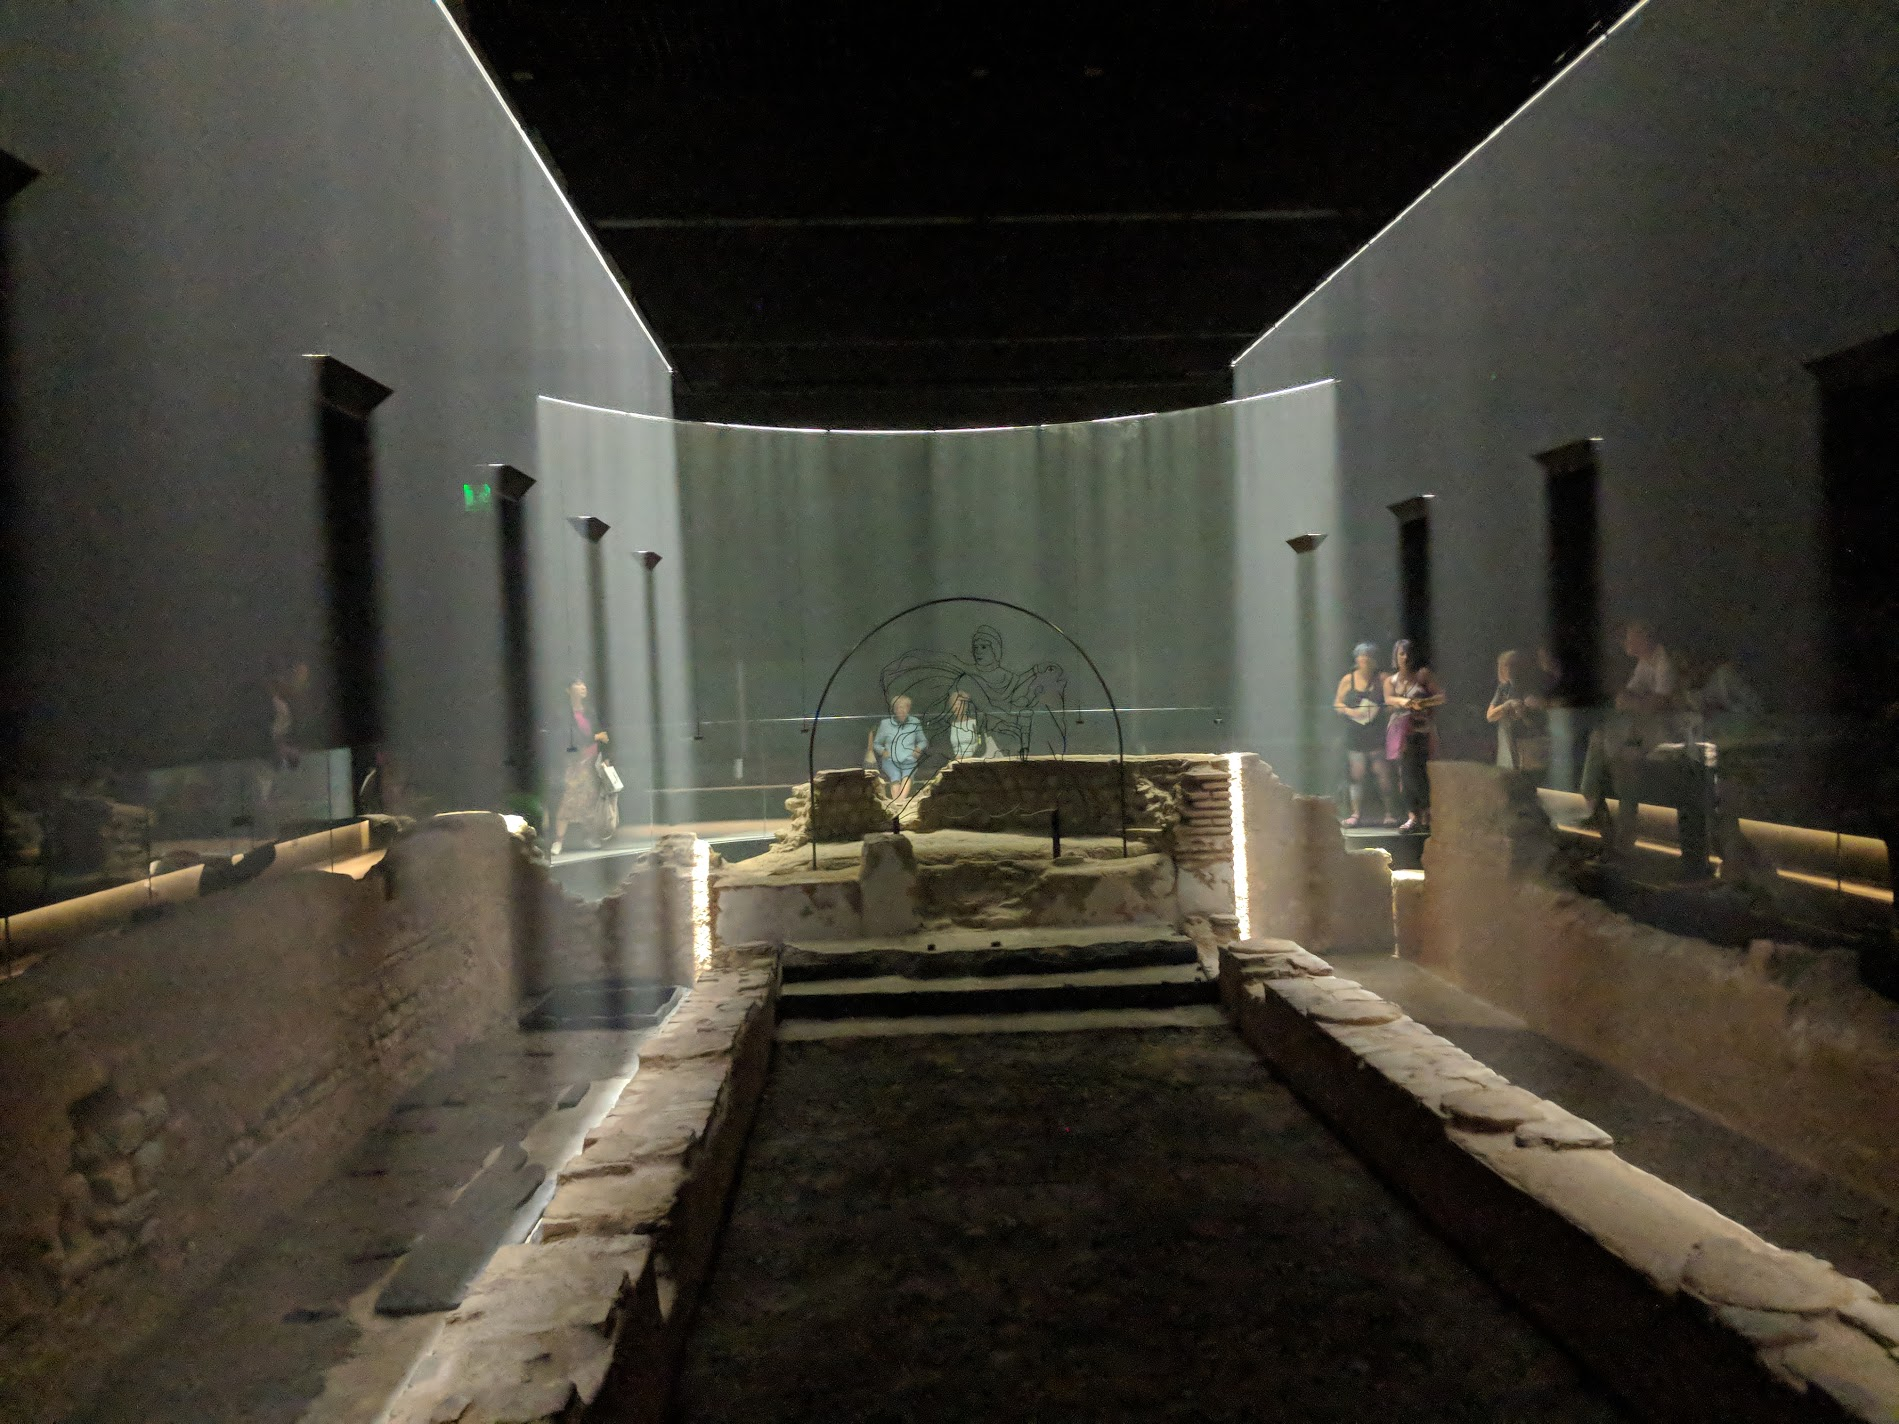 The London Mithraeum is an immersive recreation of a mysterious temple ritual from ancient Rome. [Content development]